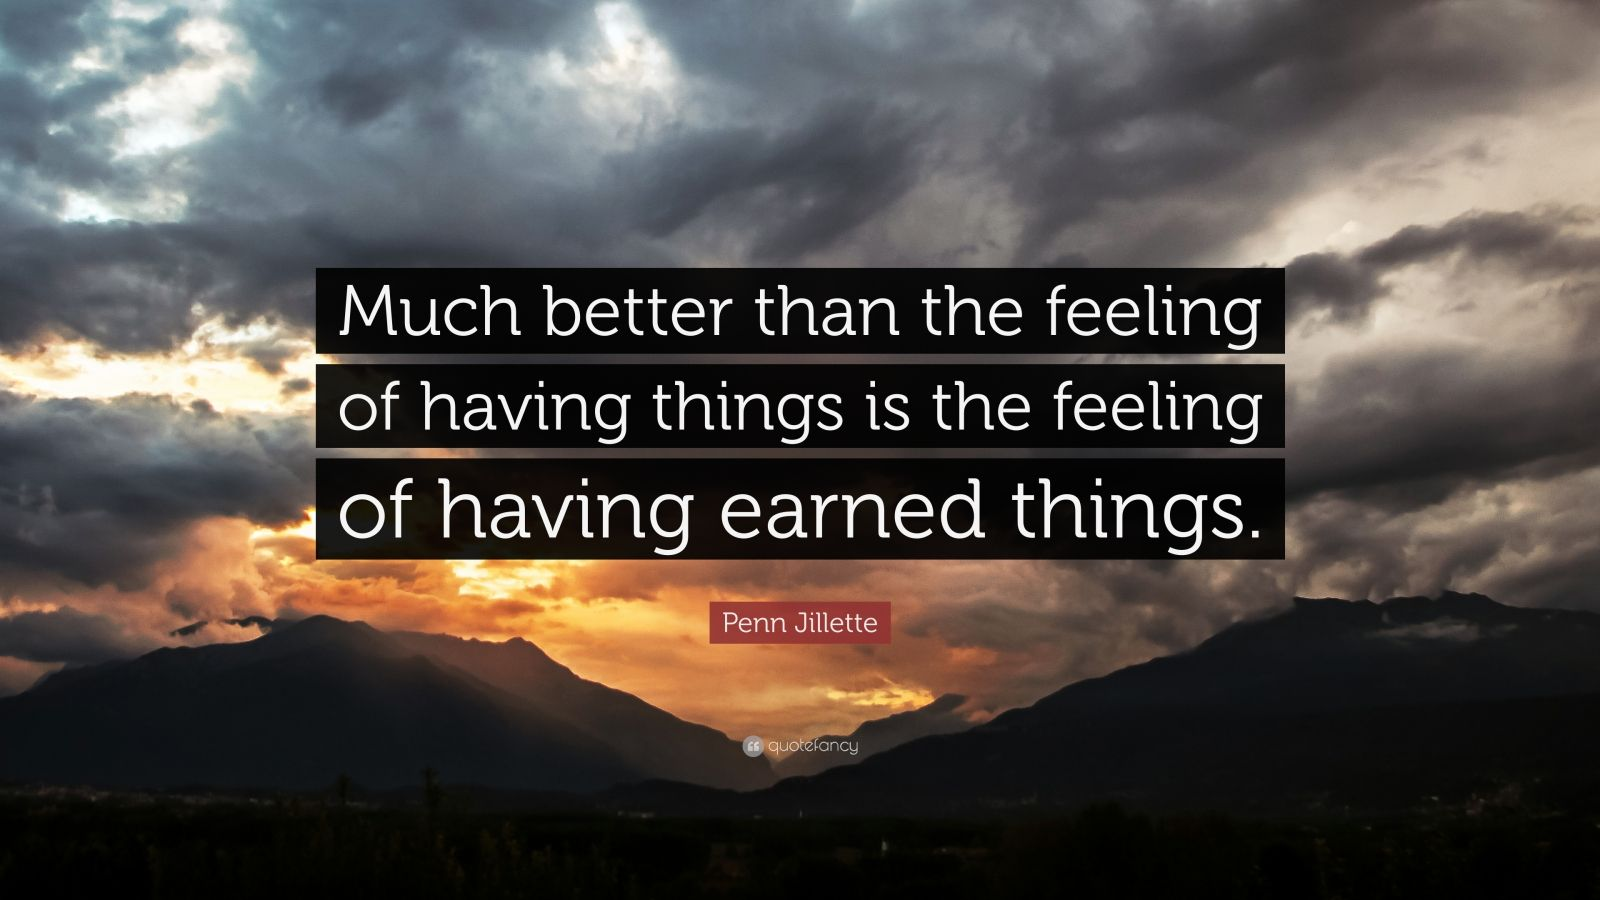 """Penn Jillette Quote: """"Much better than the feeling of having things is the feeling of having earned things."""""""